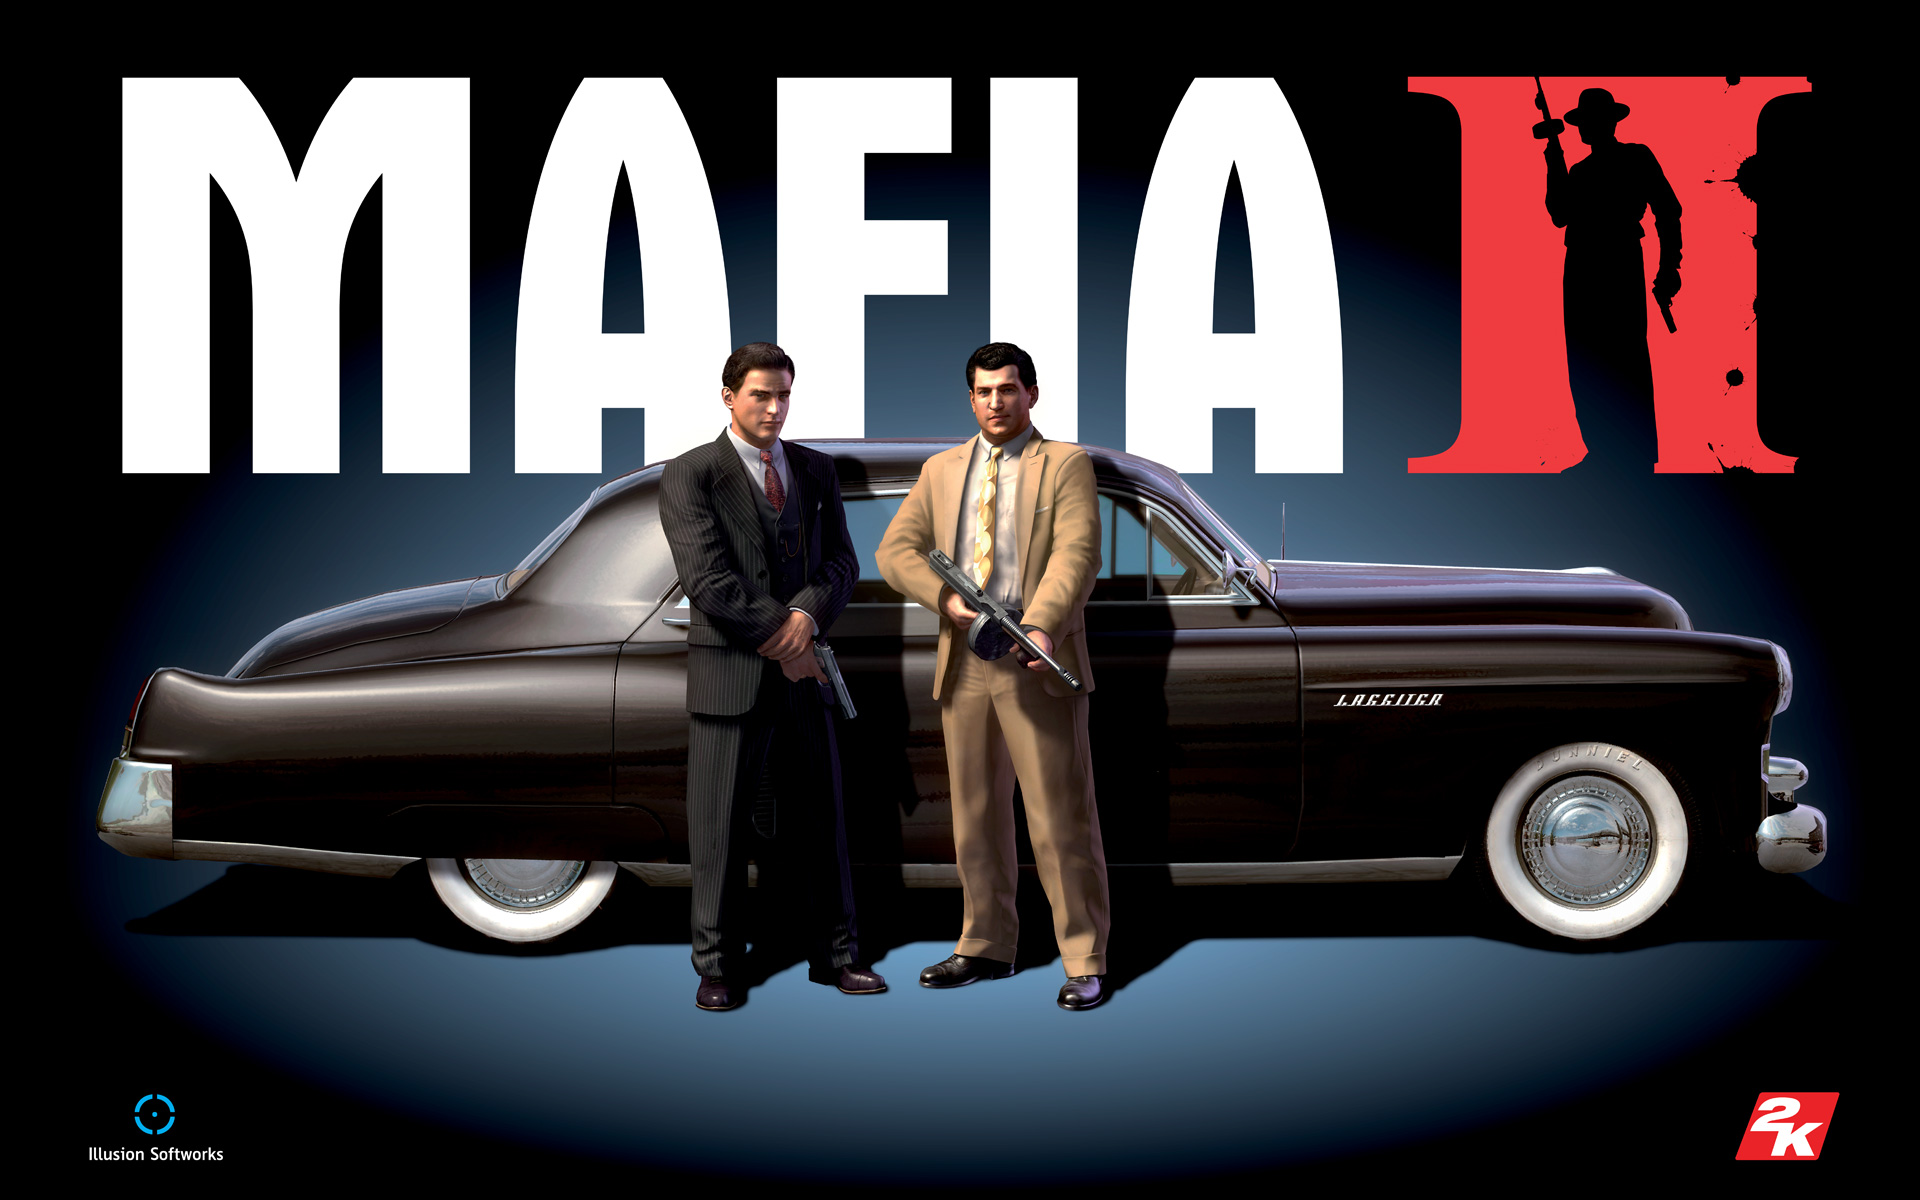 Desvelados los requisitos de Mafia II en PC